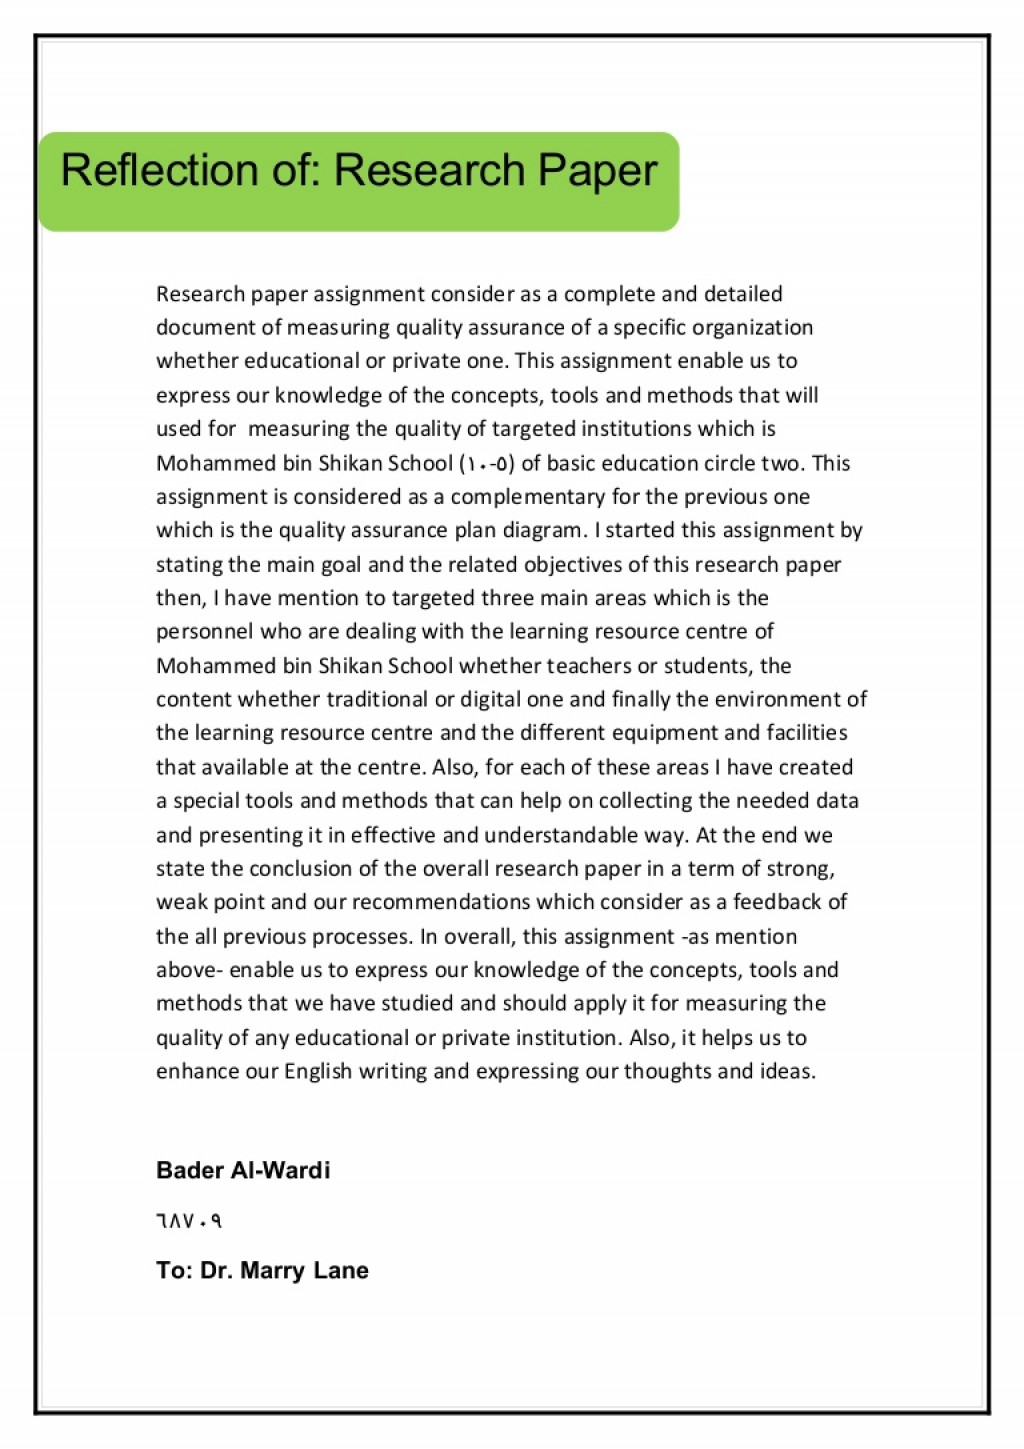 009 Researchpaperreflection Phpapp02 Thumbnail Research Paper Stupendous Generator Thesis Download Large